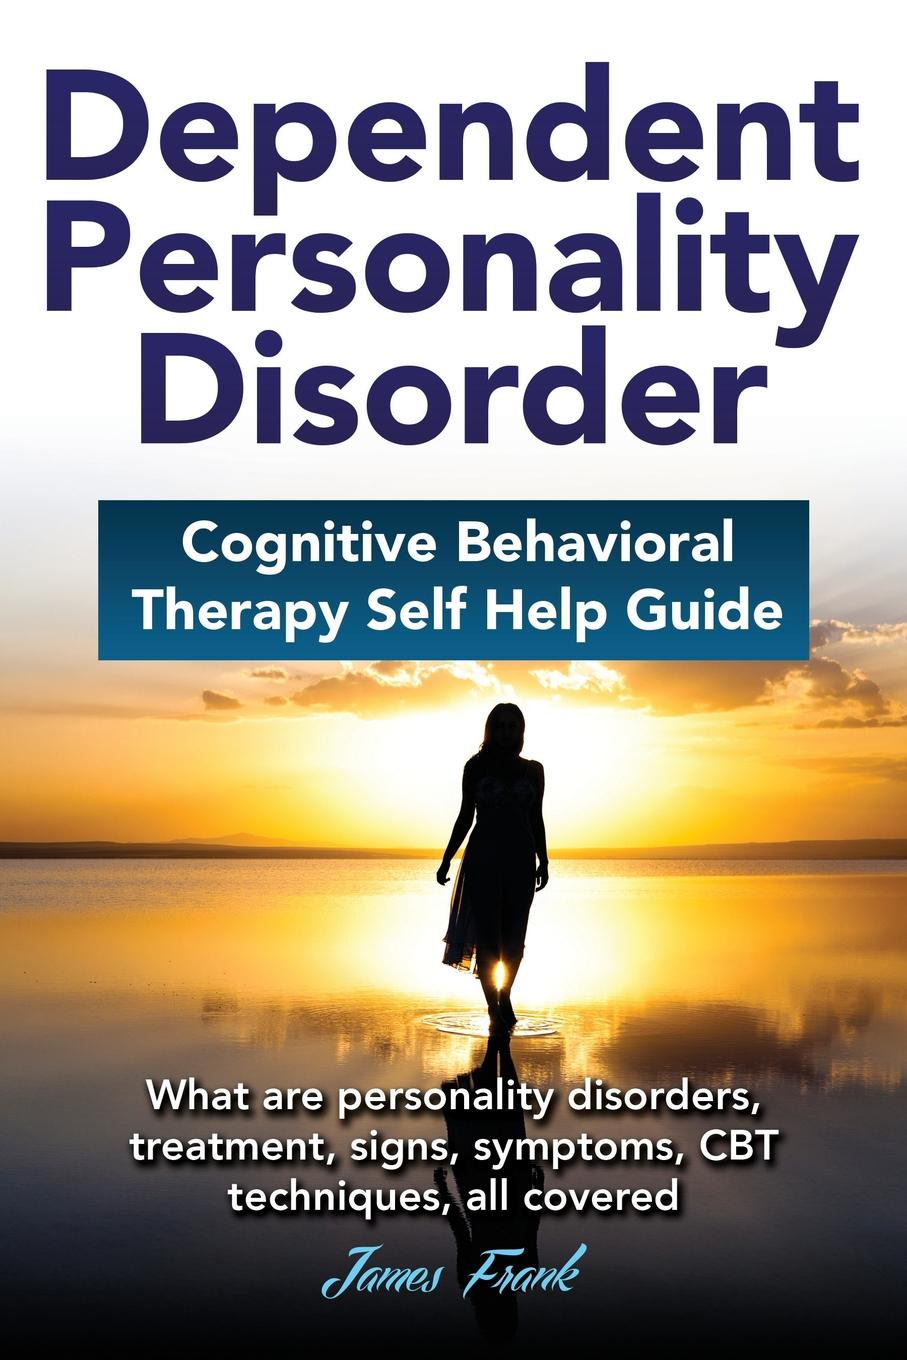 Dependent-Personality-Disorder-Cognitive-Behavioral-Therapy-self-help-guide-What-are-personality-disorders-treatment-signs-symptoms-CBT-techniques-all